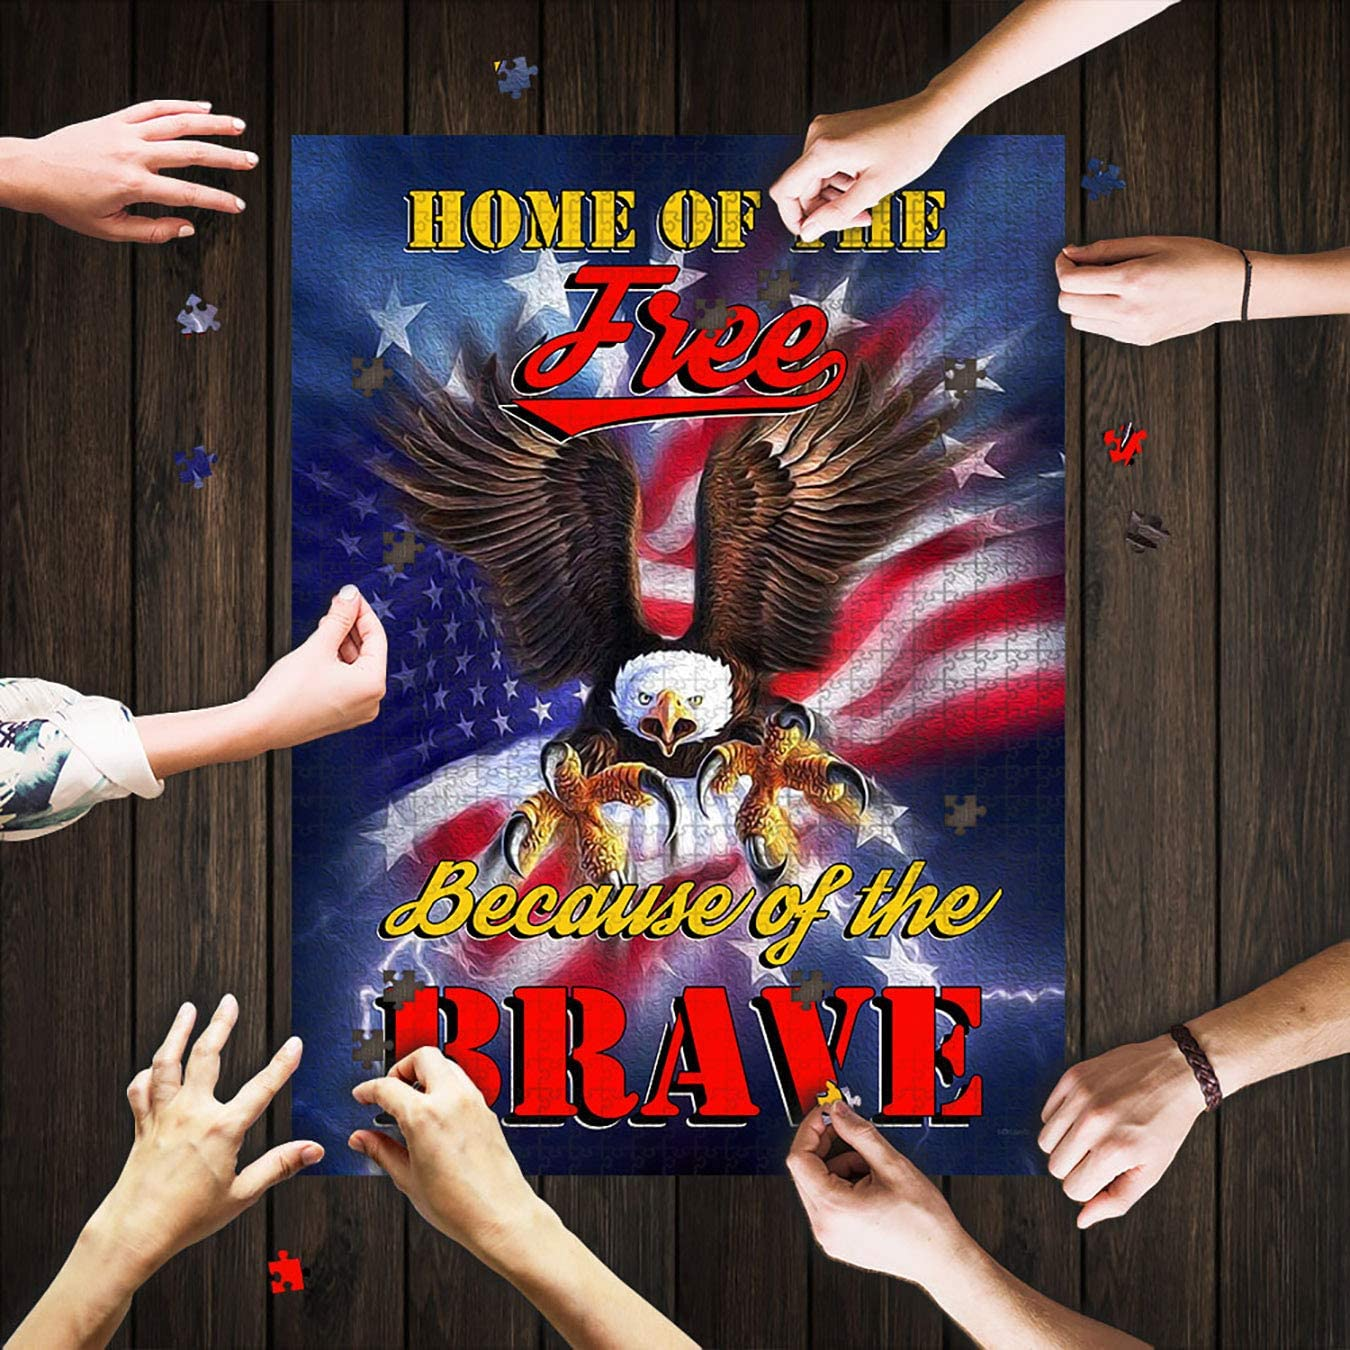 Home of The Free Puzzles -Puzzles for Adults 1000 Piece-Jigsaw Puzzles-Games for Adults-Puzzles for Adults (Multicolor, 1000 Pieces, Finished Size 30